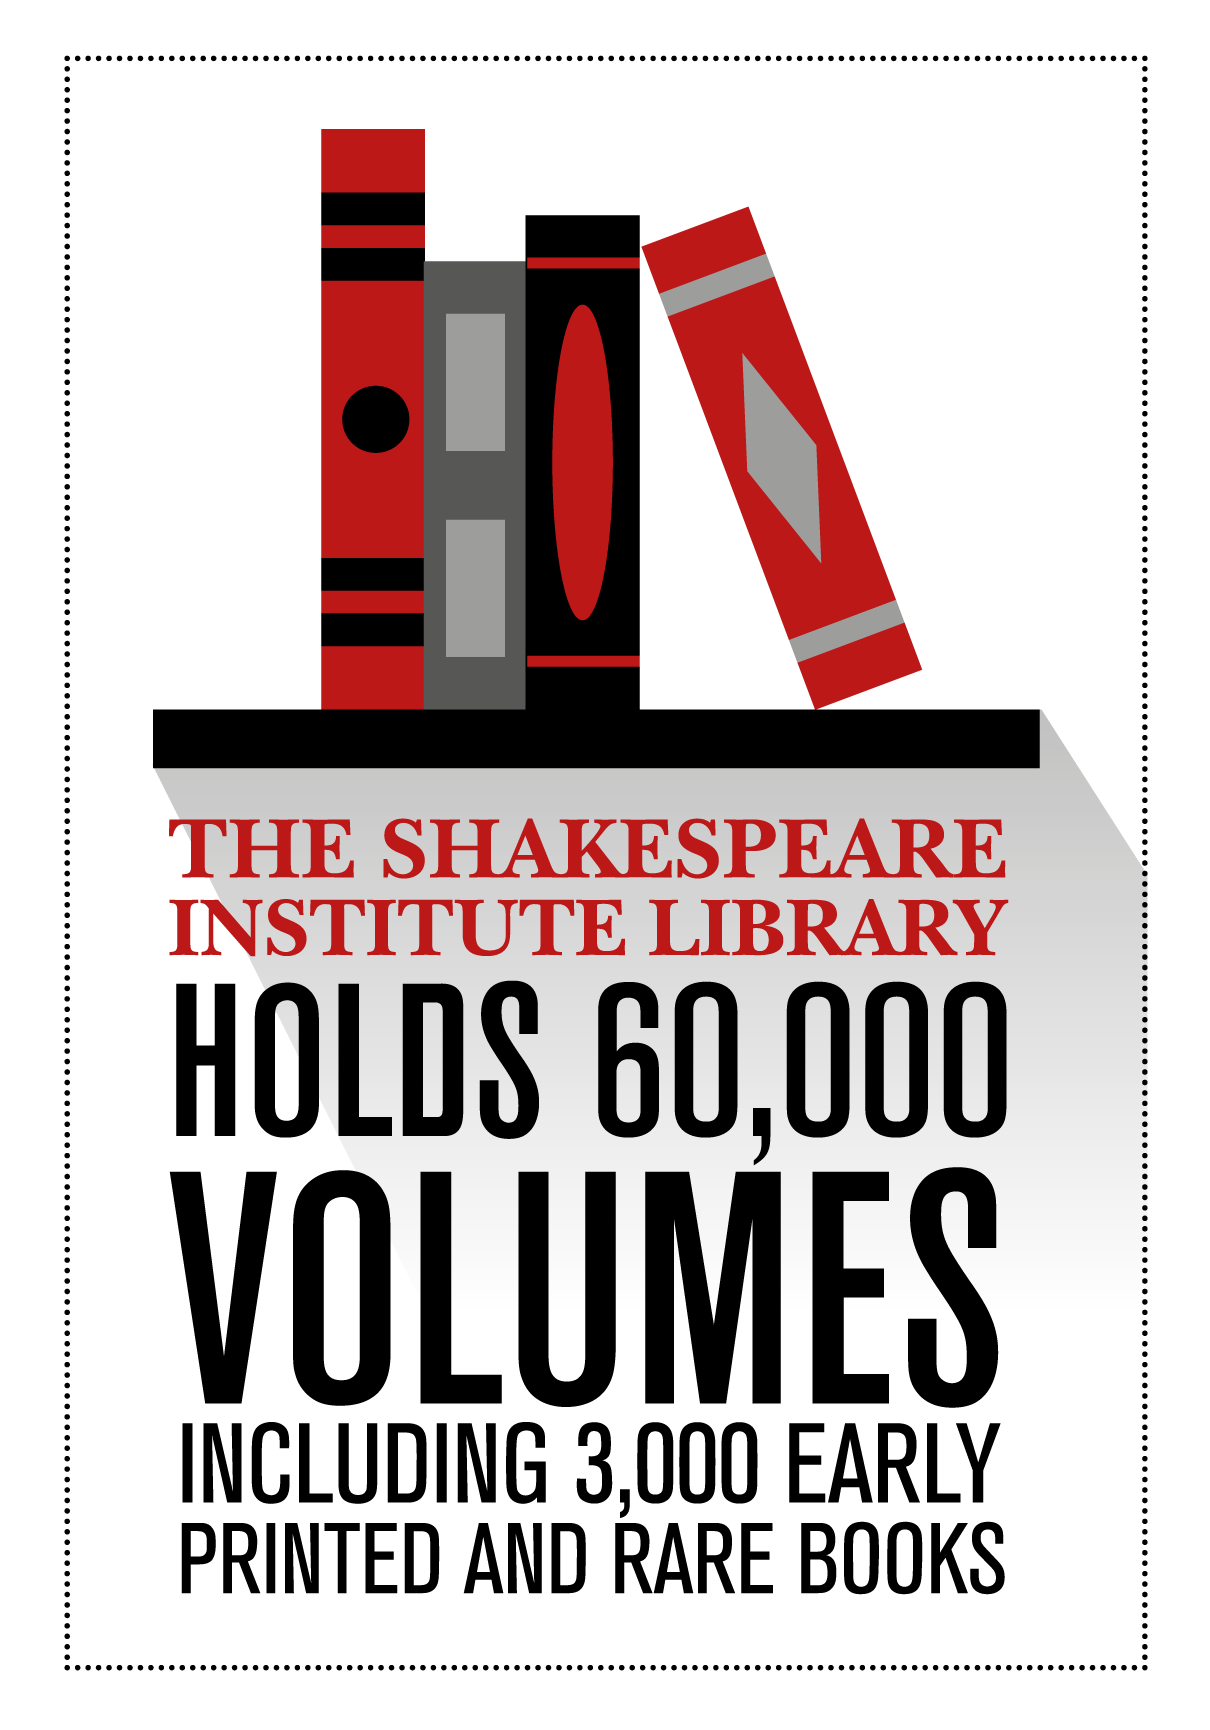 The Shakespeare institute library holds 60,000 volumes including 3,000 early printed and rare books